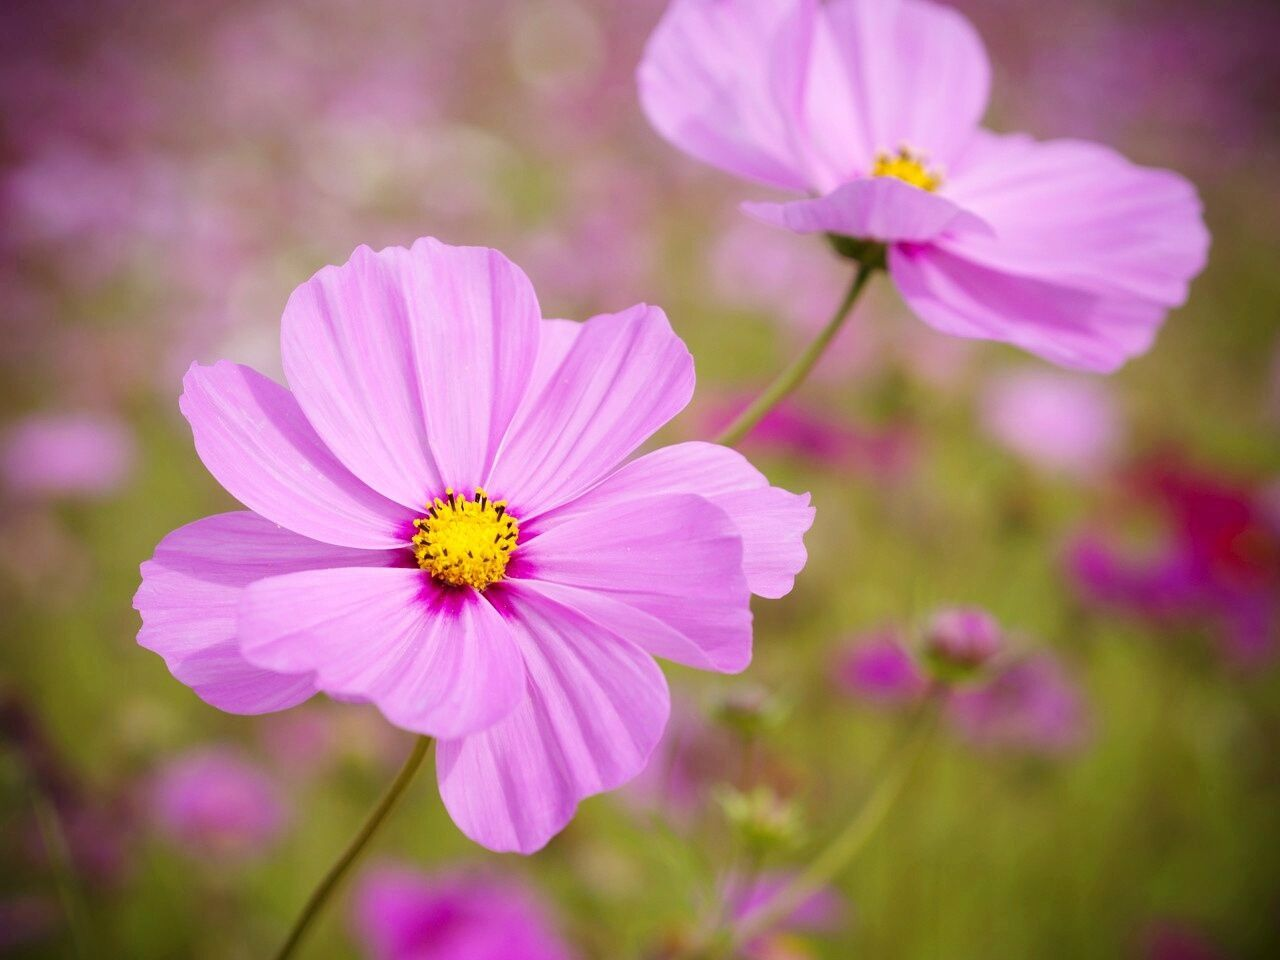 How to grow cosmos a quintessential cottage garden flower cosmos are profuse blooming annual flowers that are perfect for a cottage garden here are tips for growing these drought tolerant fast growing flowers izmirmasajfo